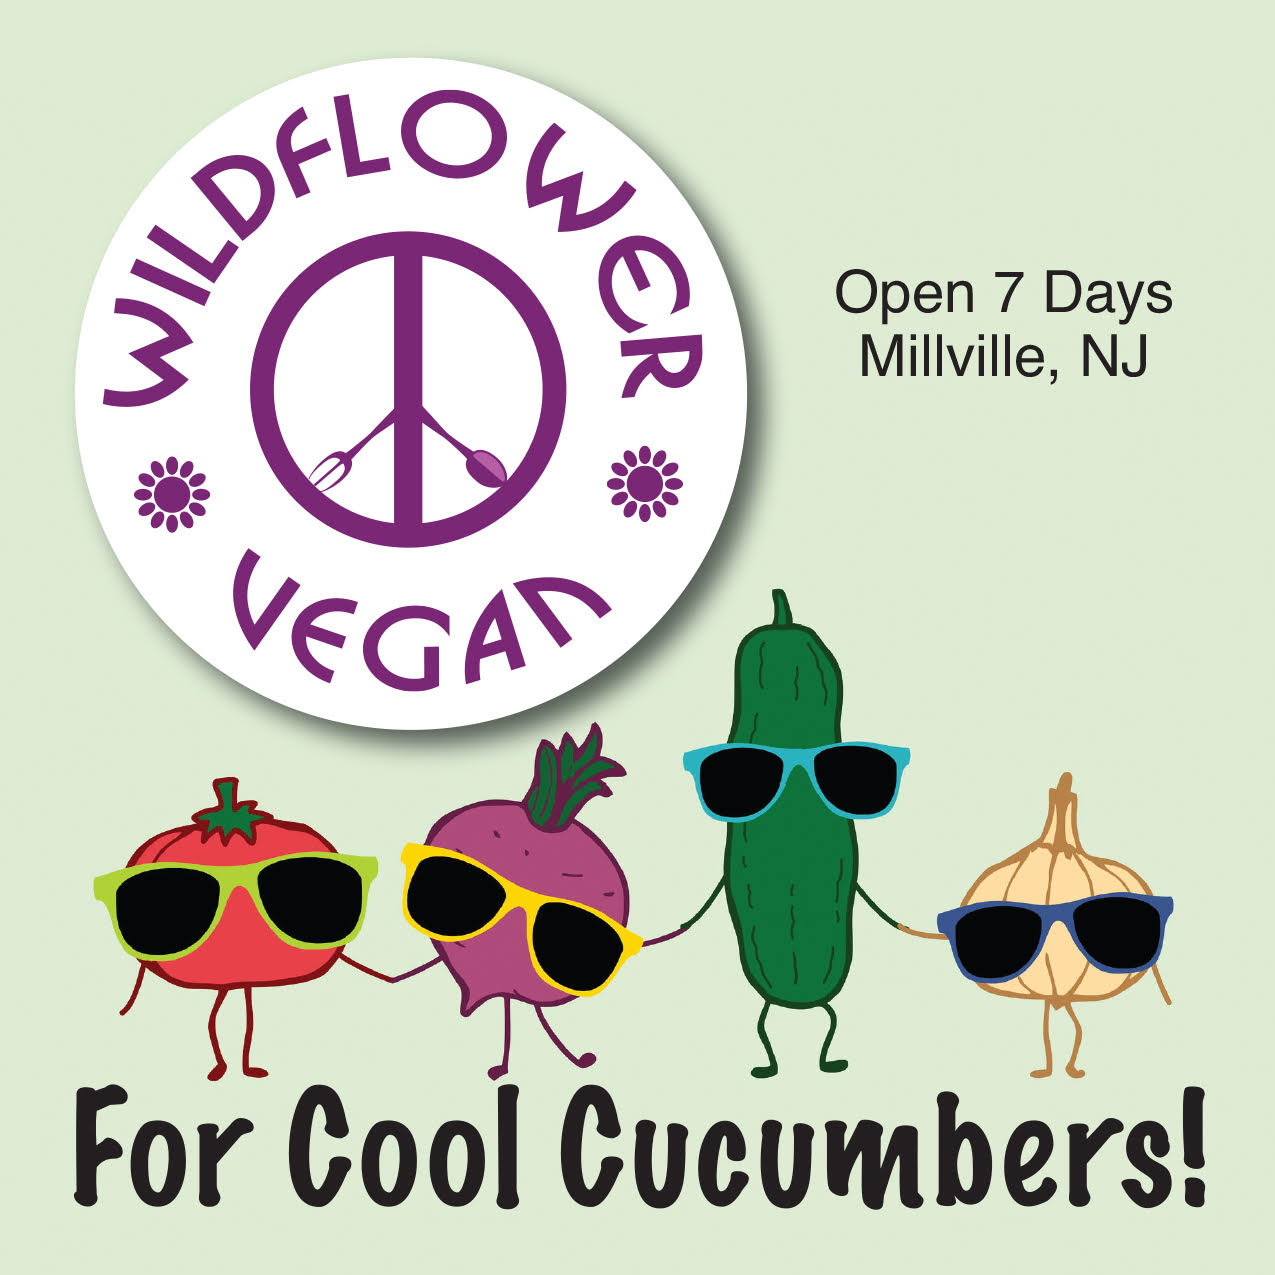 For Cool Cucumbers 4x4 Bumper Sticker